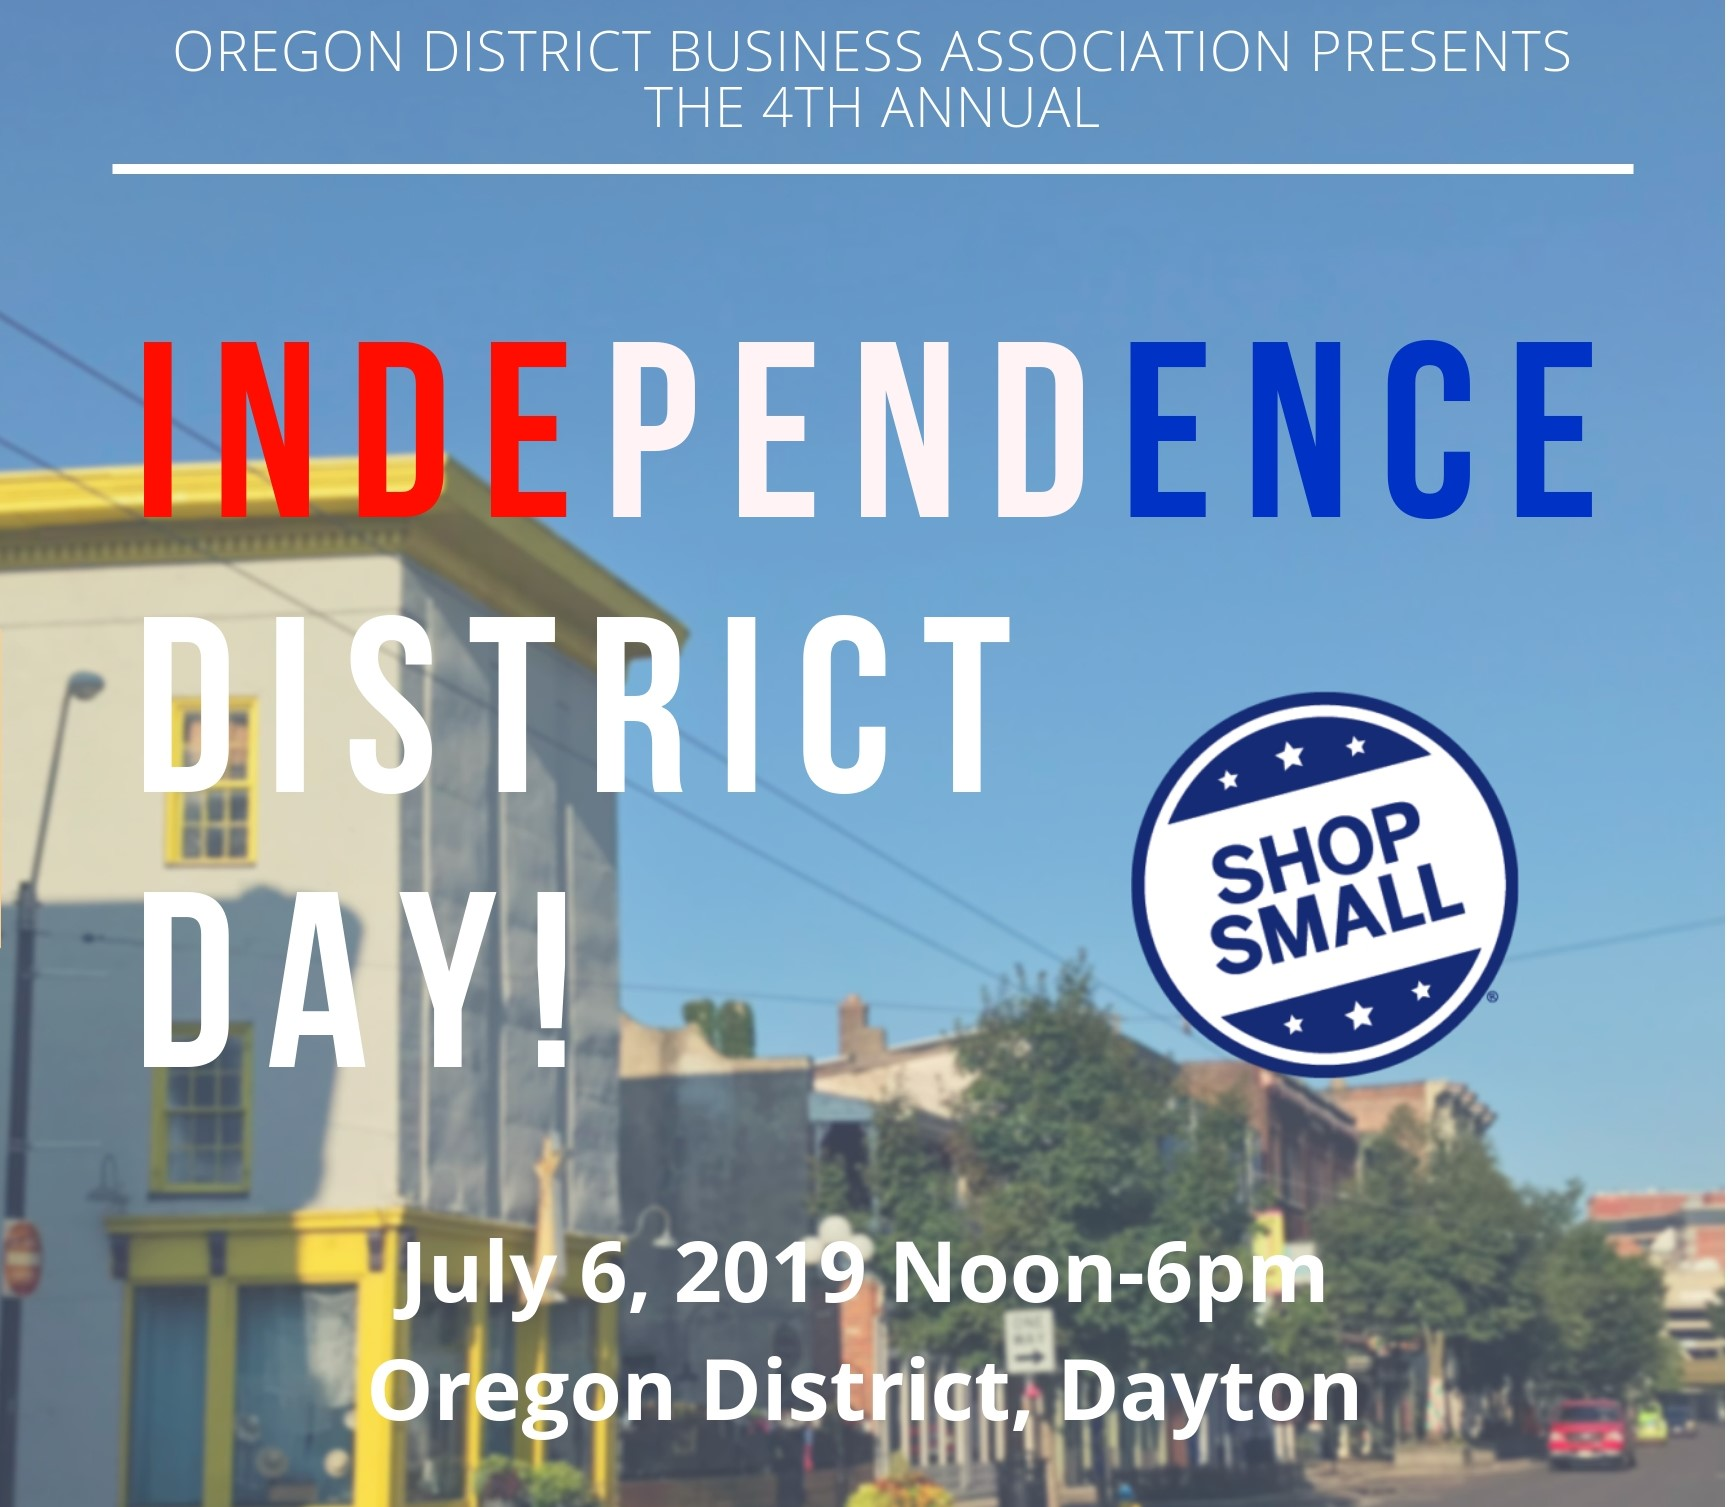 District Day 2019 Flyer - Cropped.jpg